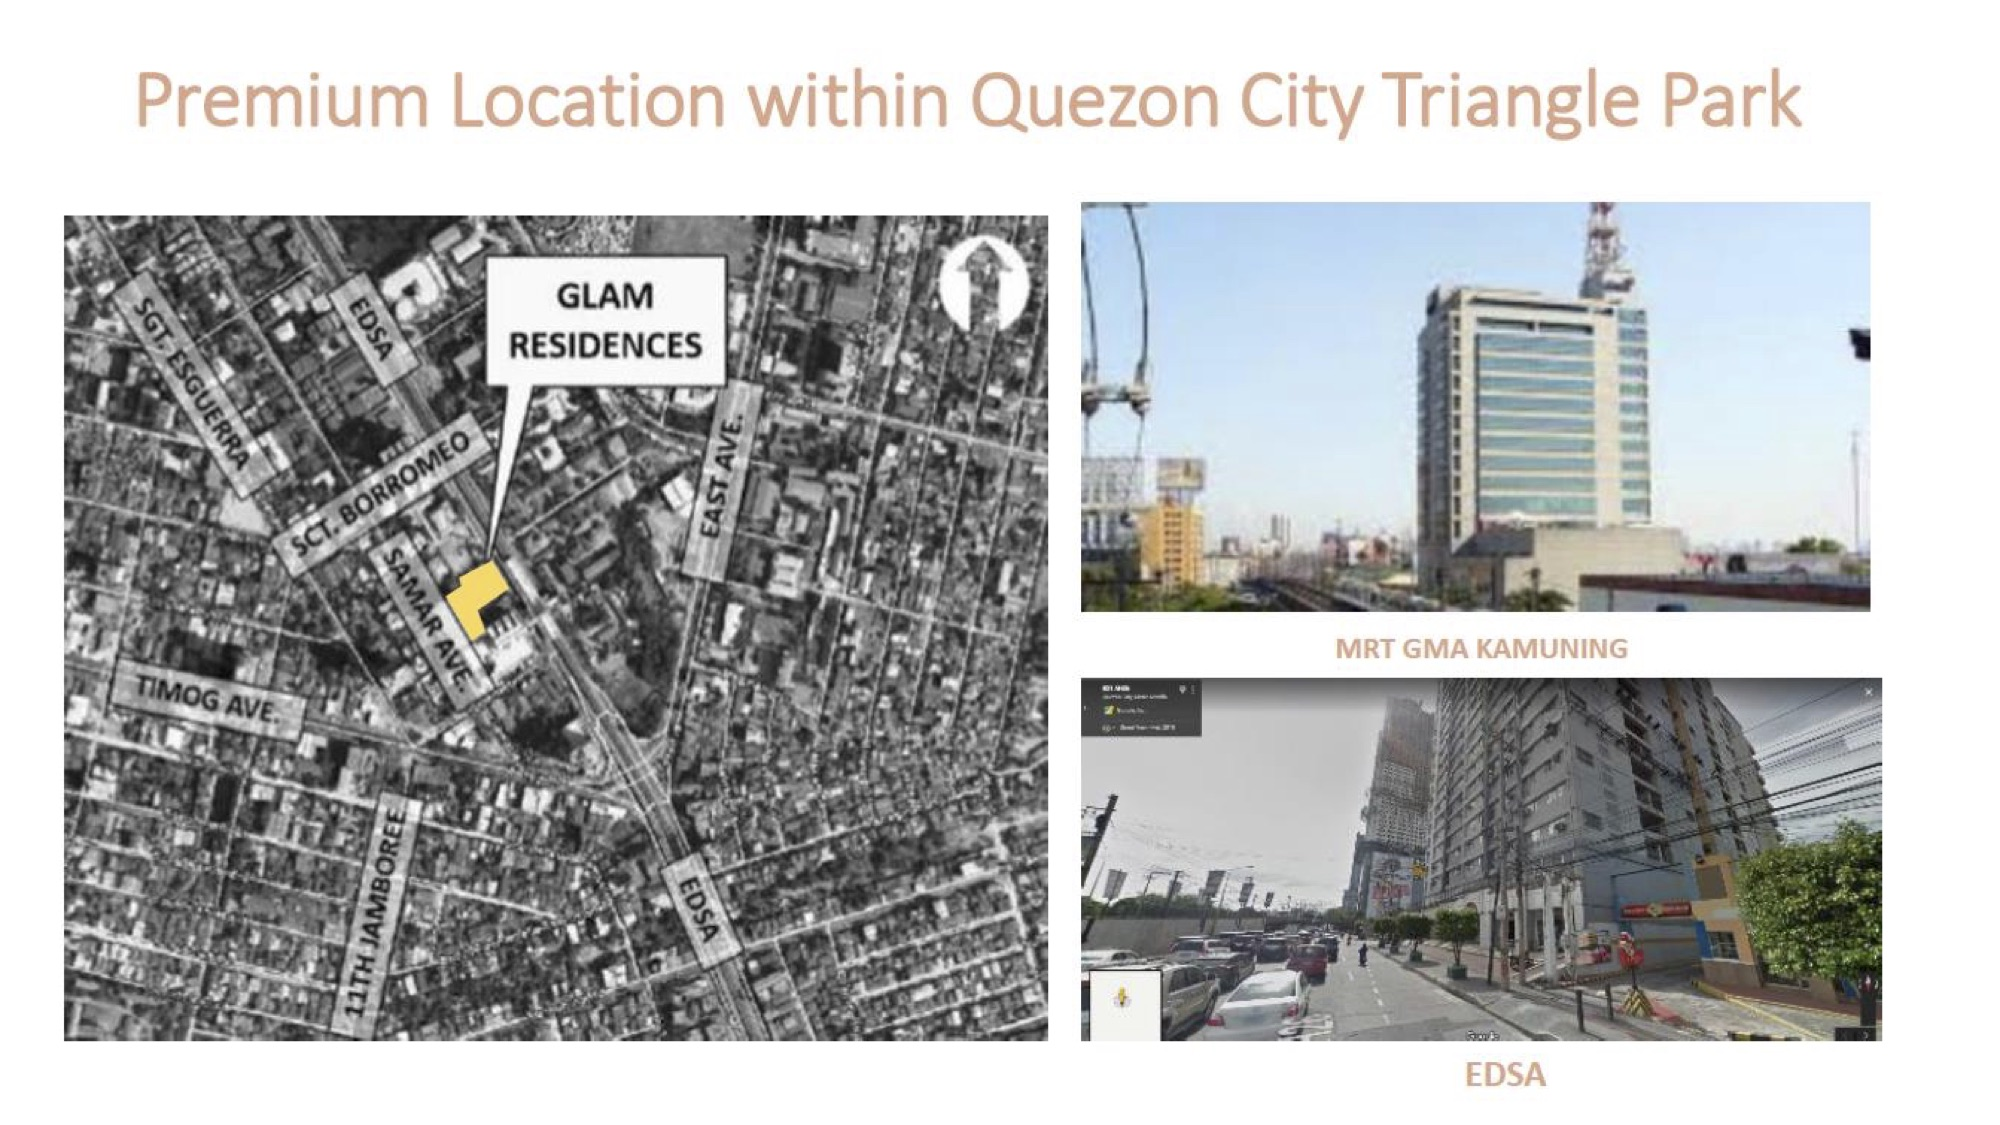 GLAM Residences Location